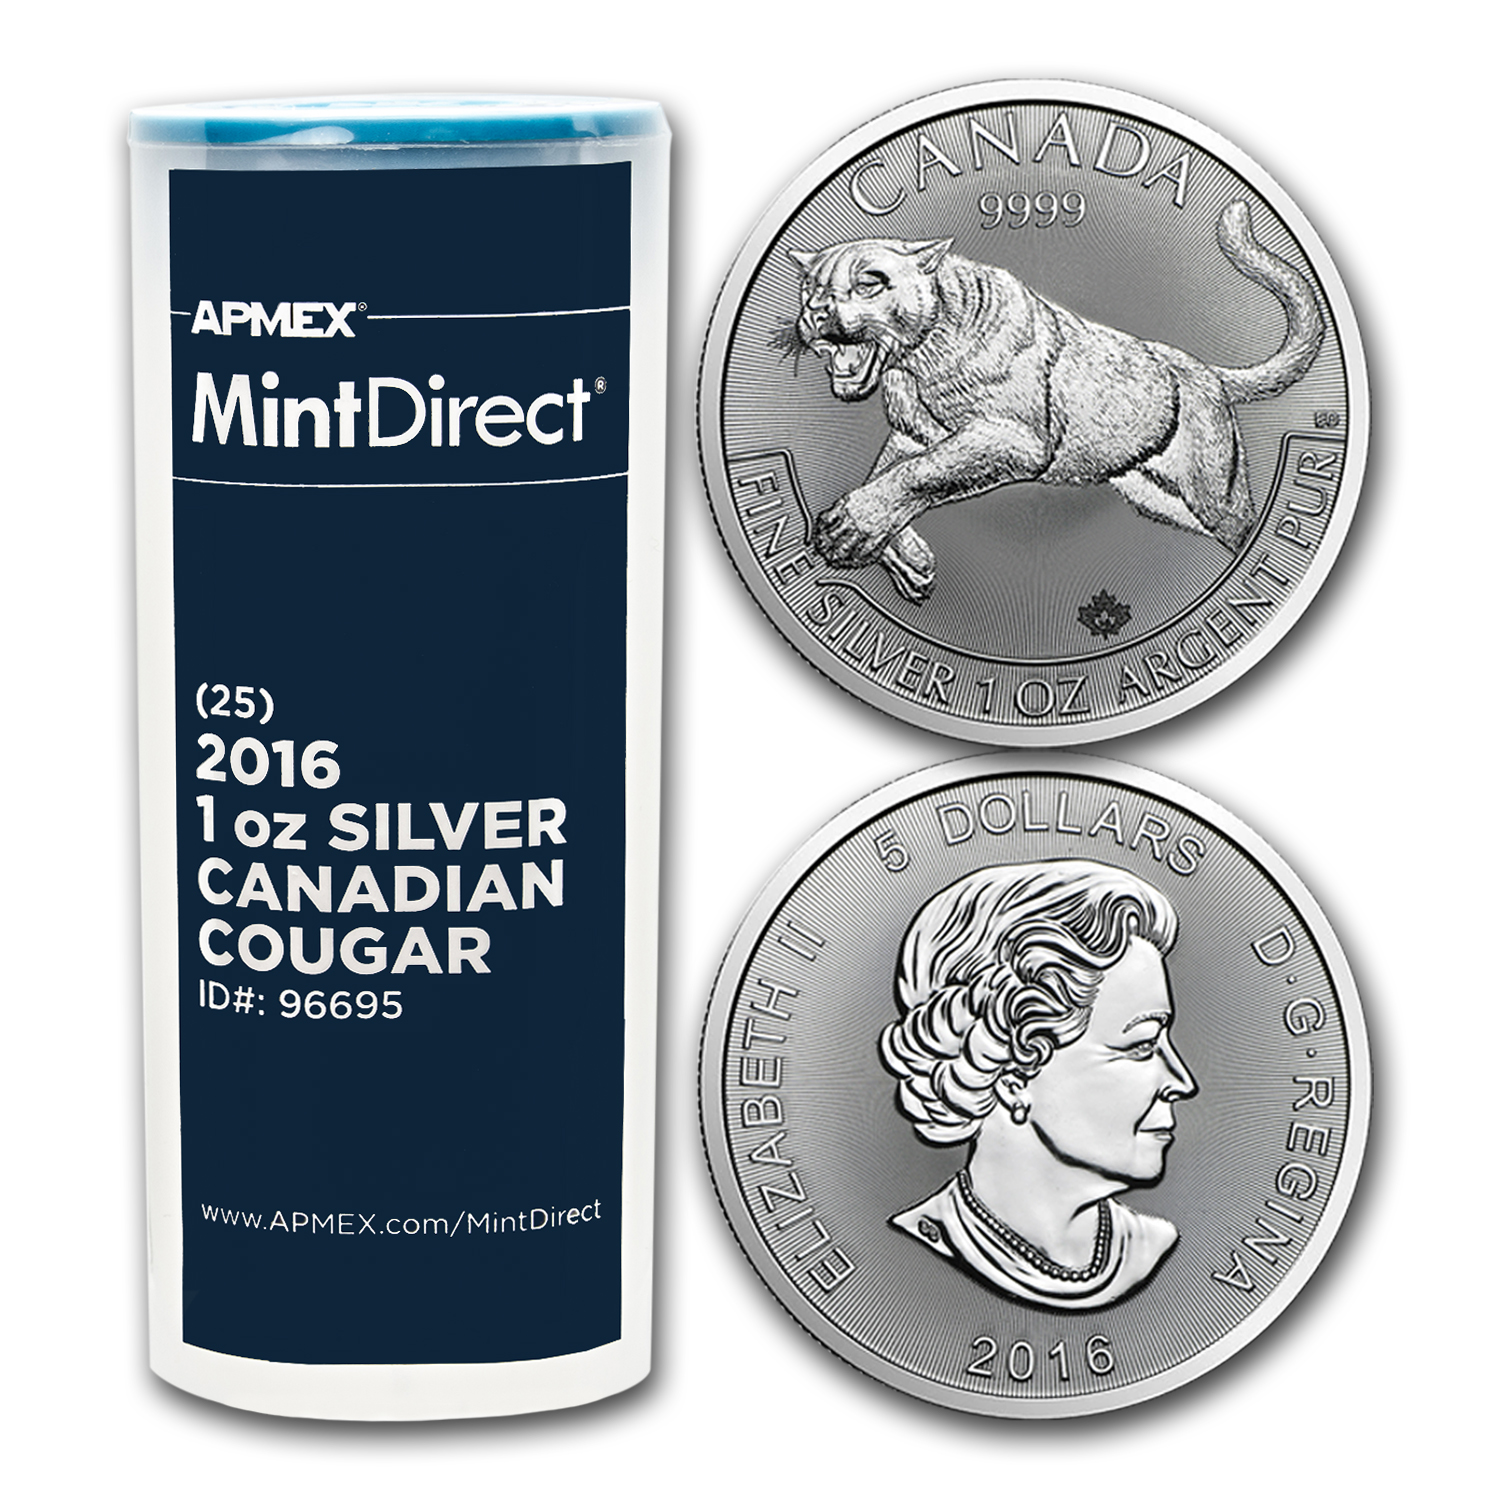 2016 Canada 1 oz Silver Cougar (25-Coin MintDirect® Tube)